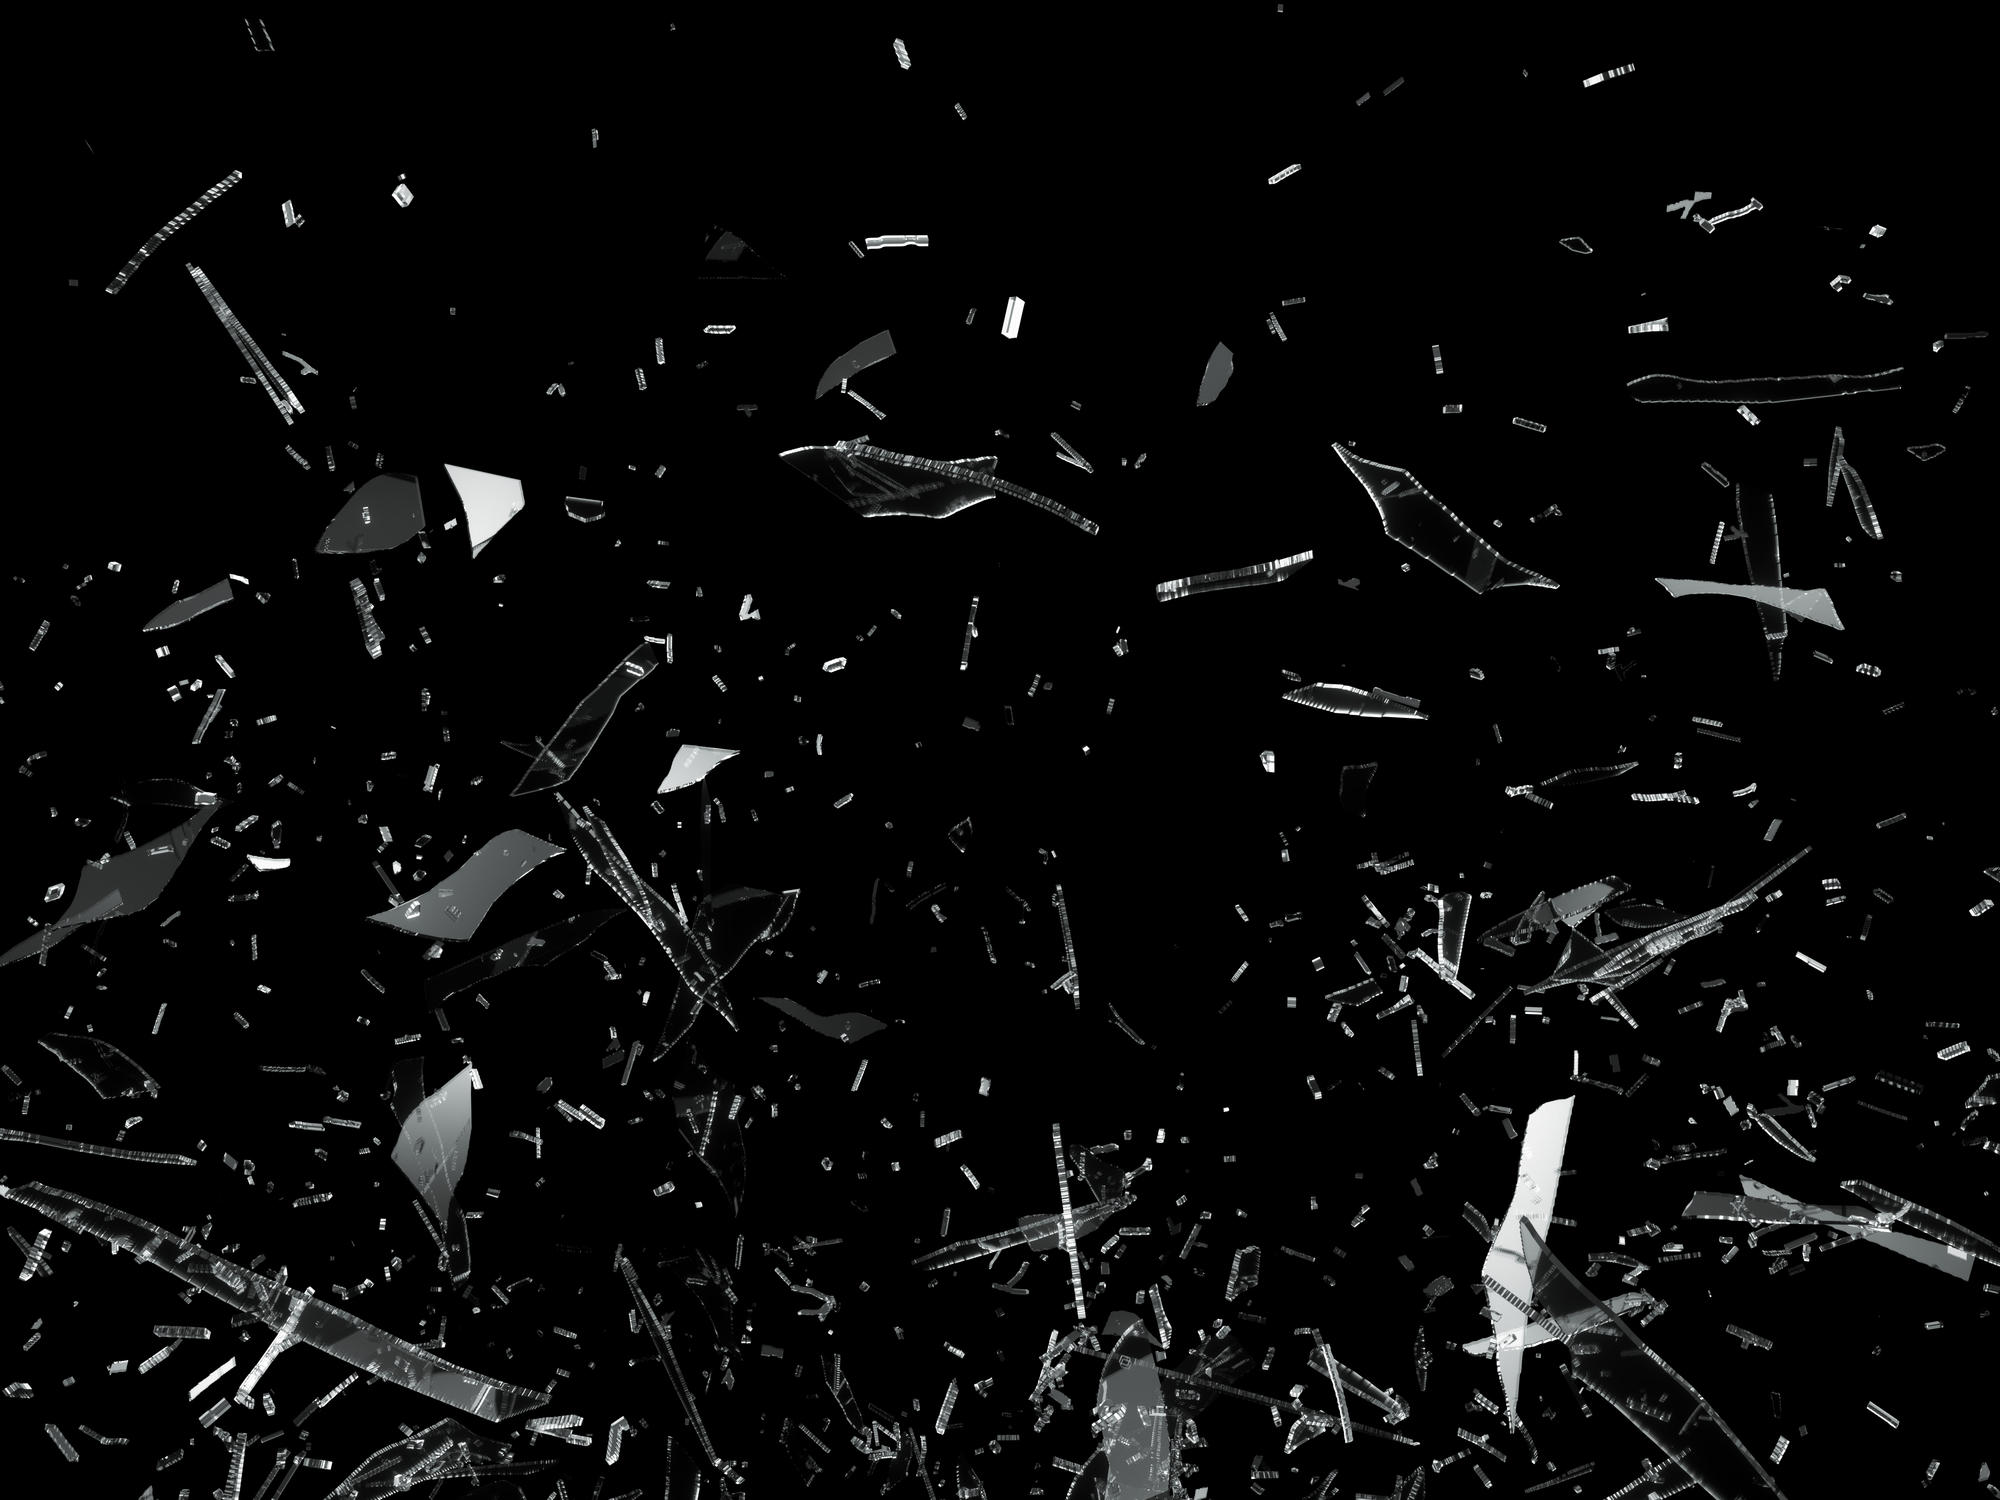 Pieces of Broken Shattered glass on black